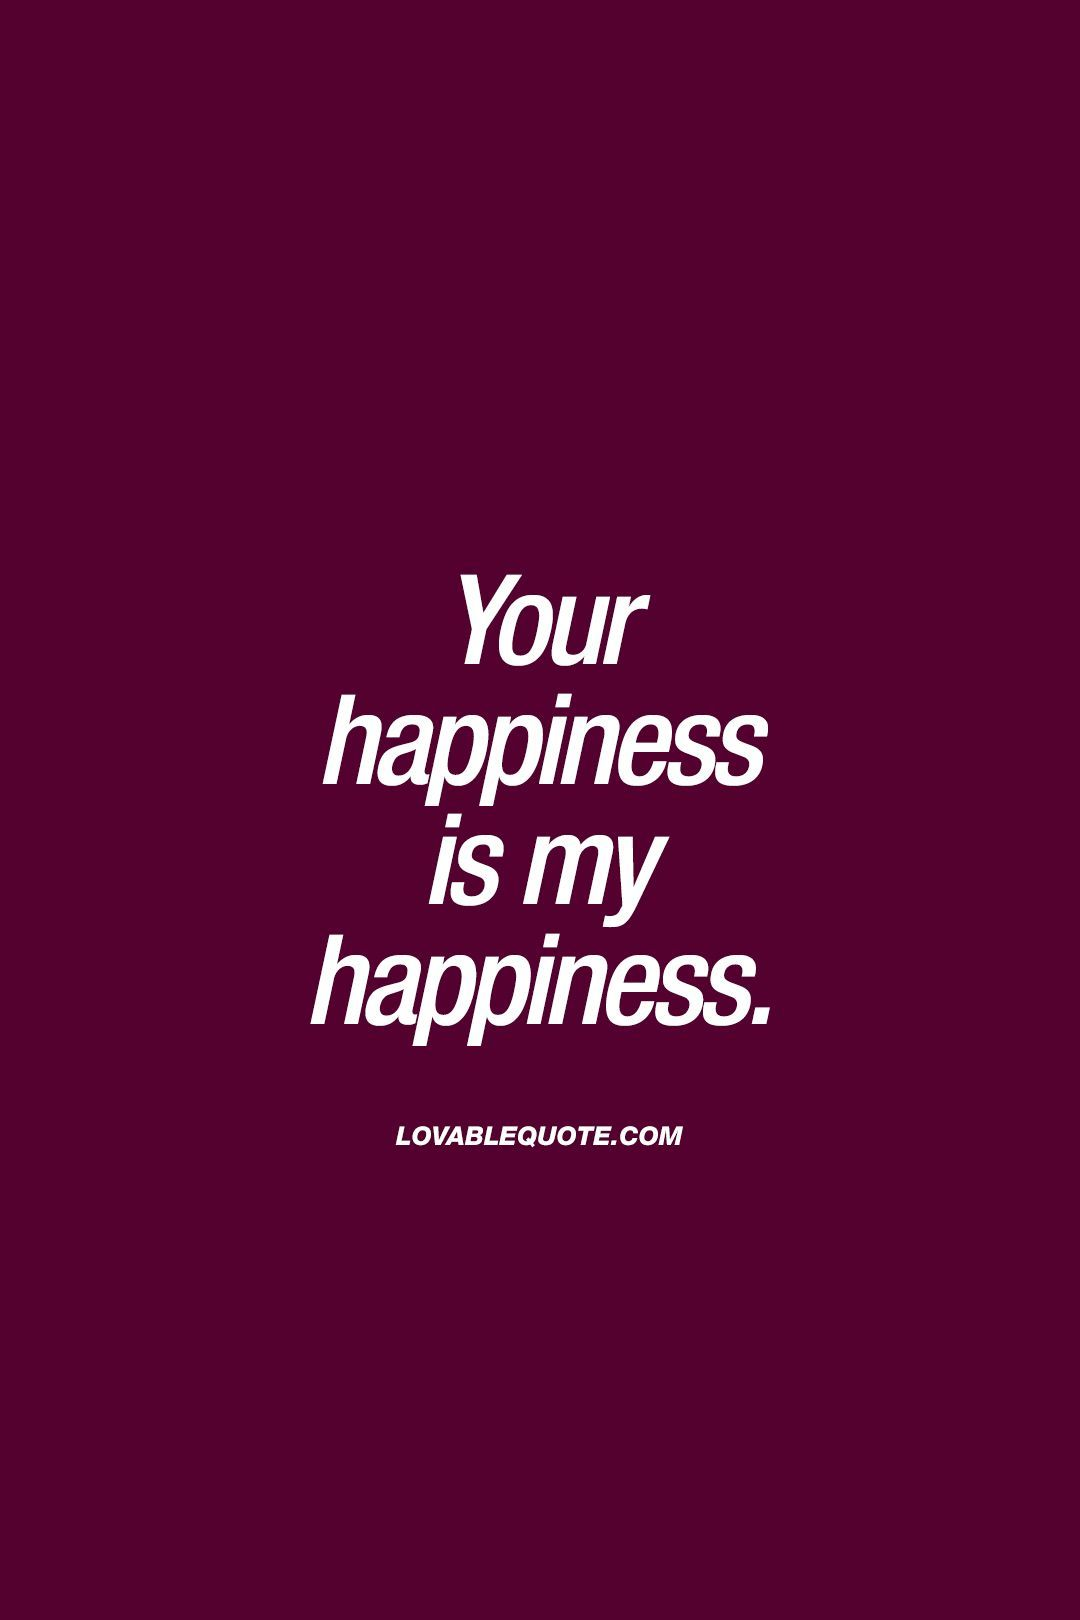 Your happiness is my happiness ❤ The way it should be in a